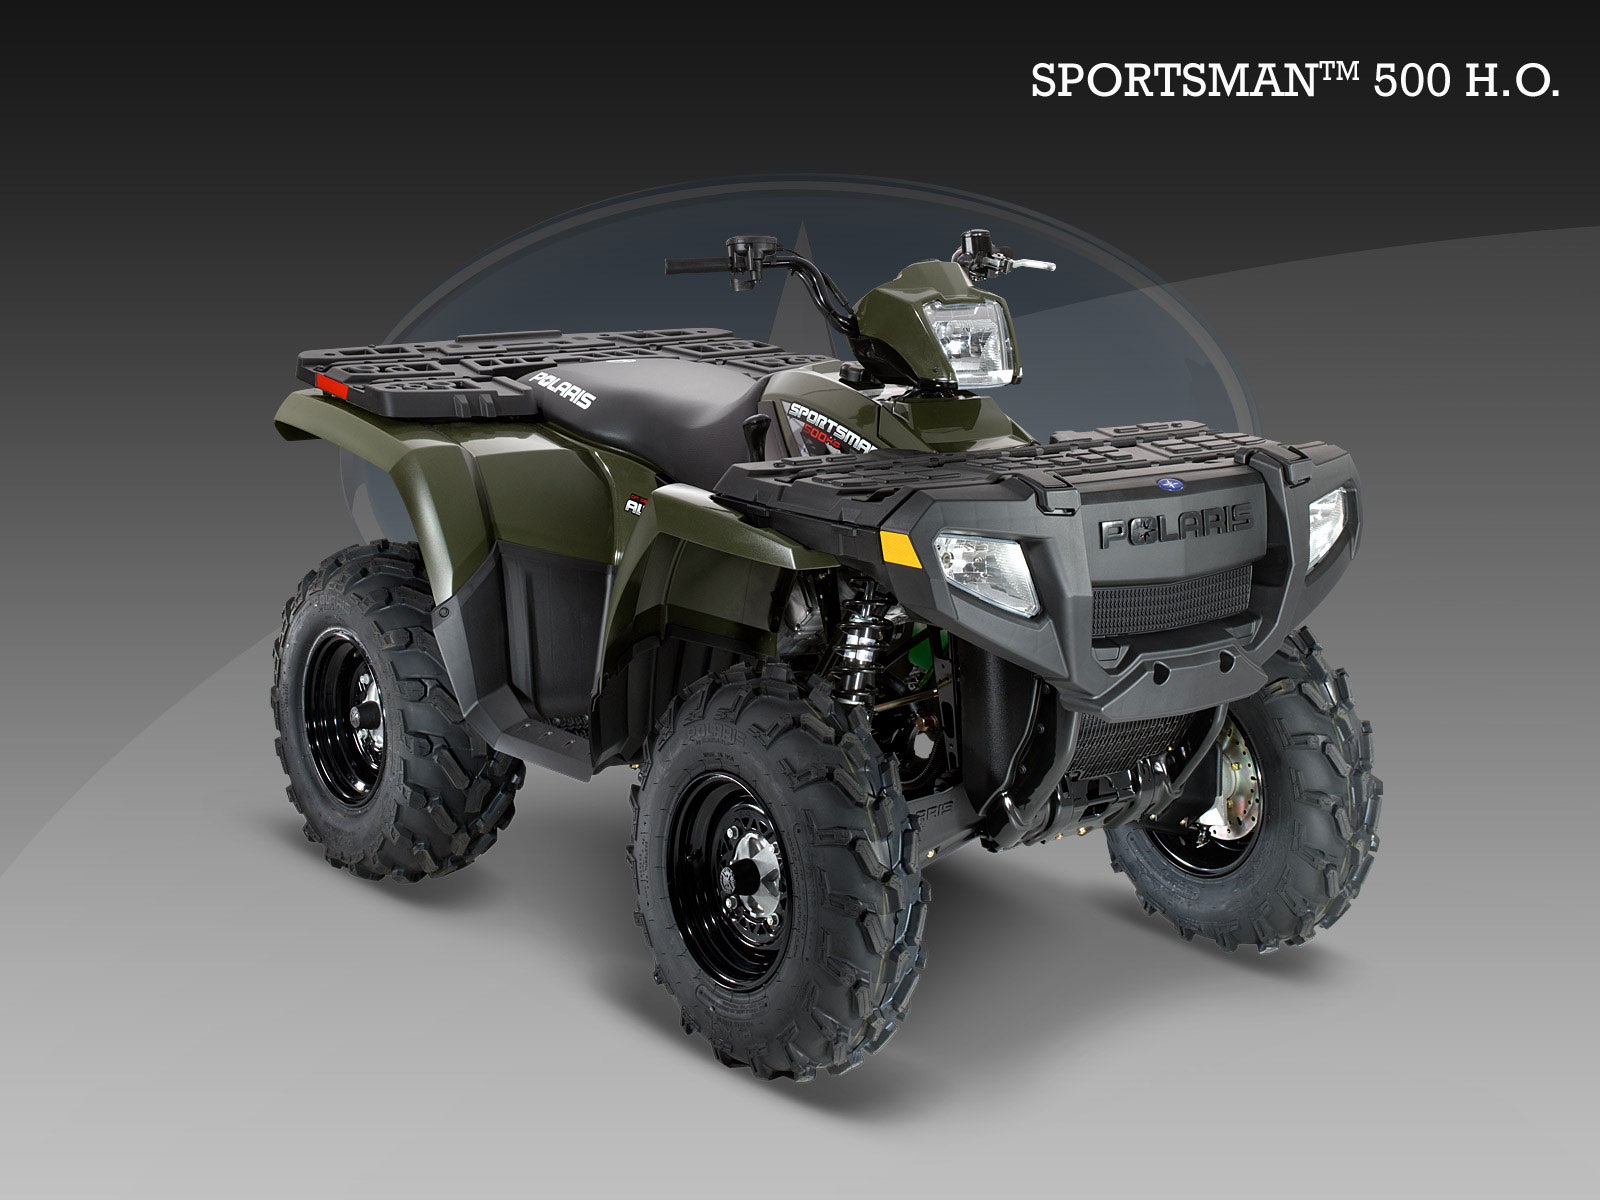 Polaris Sportsman 500 H.O images #162866